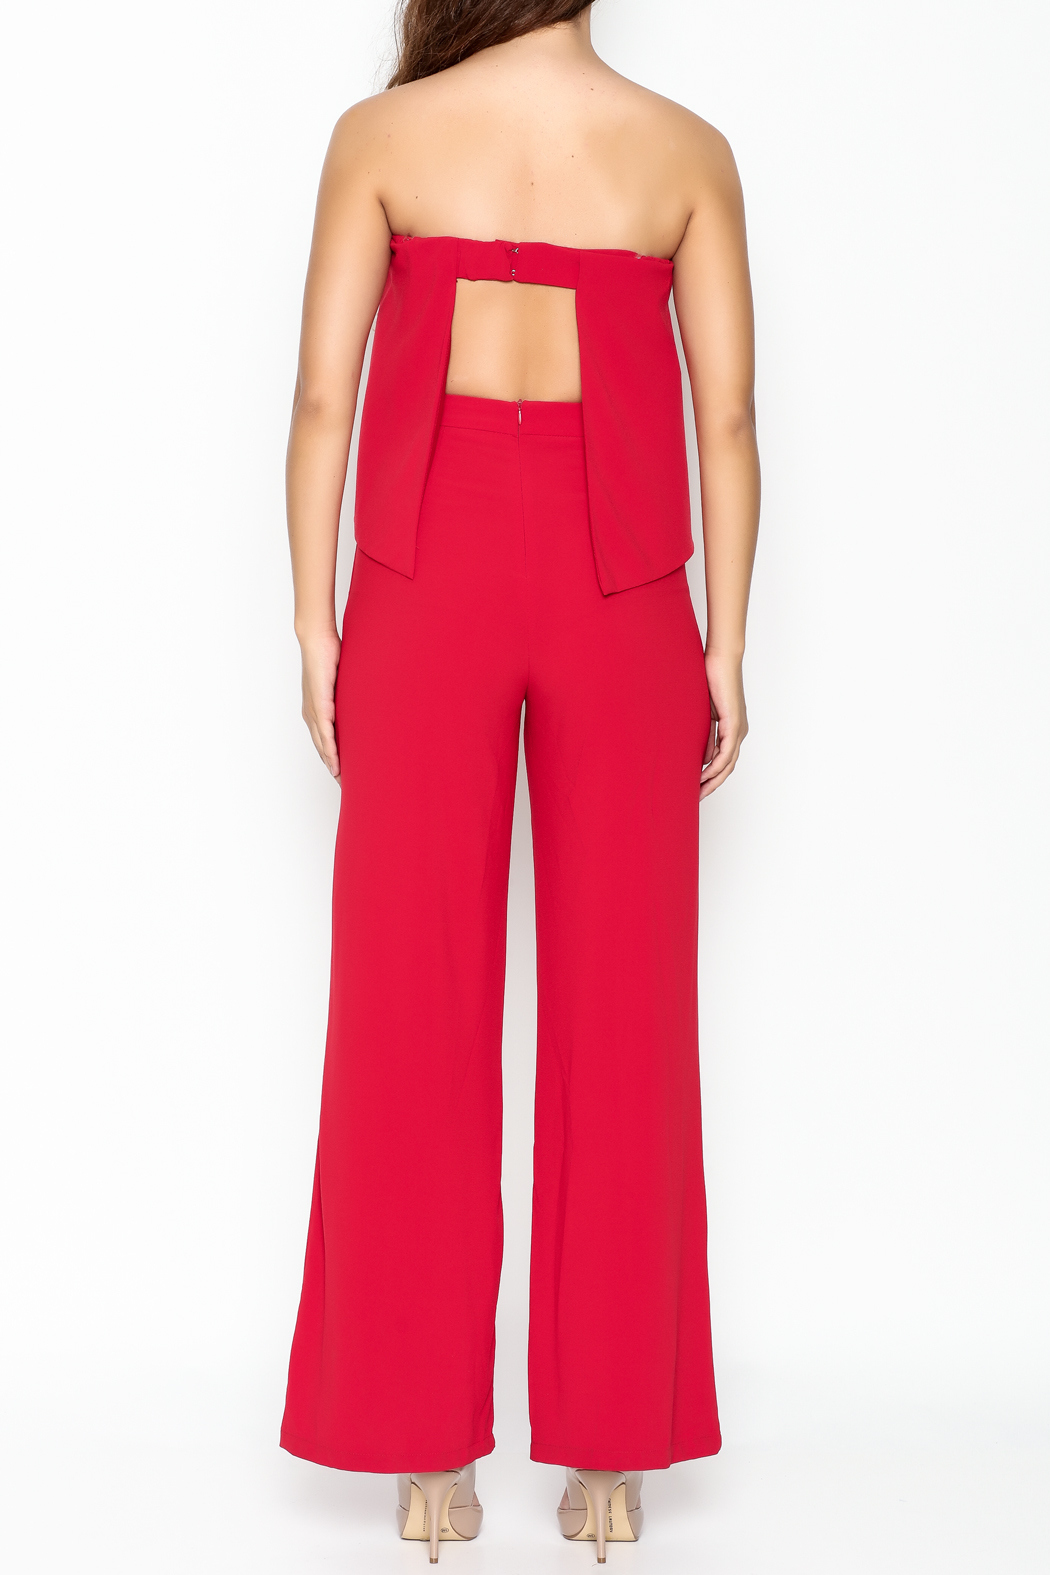 Do-Be Ruffle Strapless Jumpsuit - Back Cropped Image